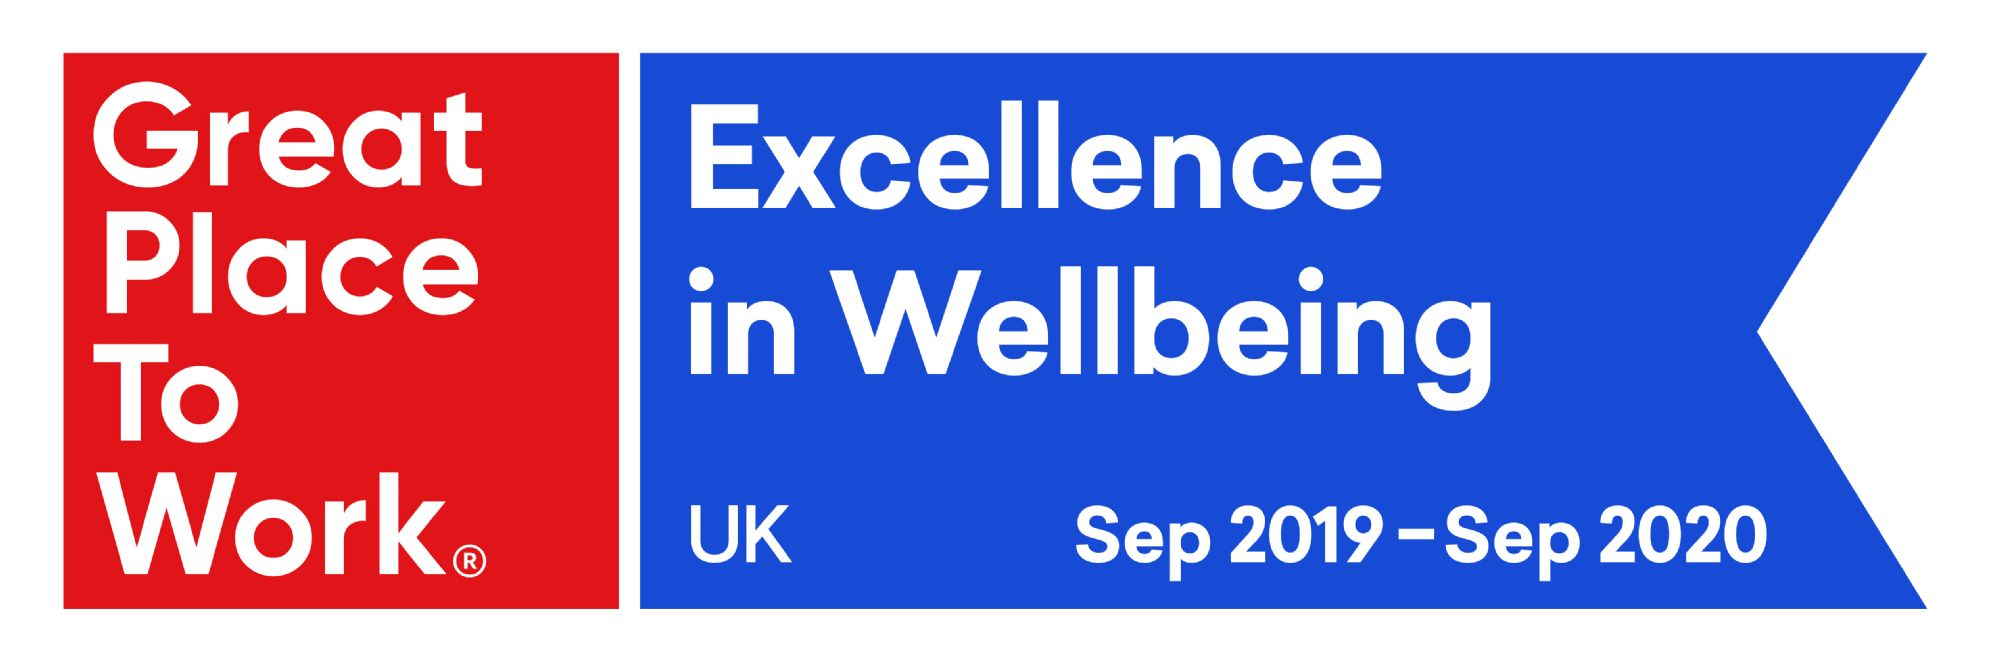 GPTW-wellbeing-award